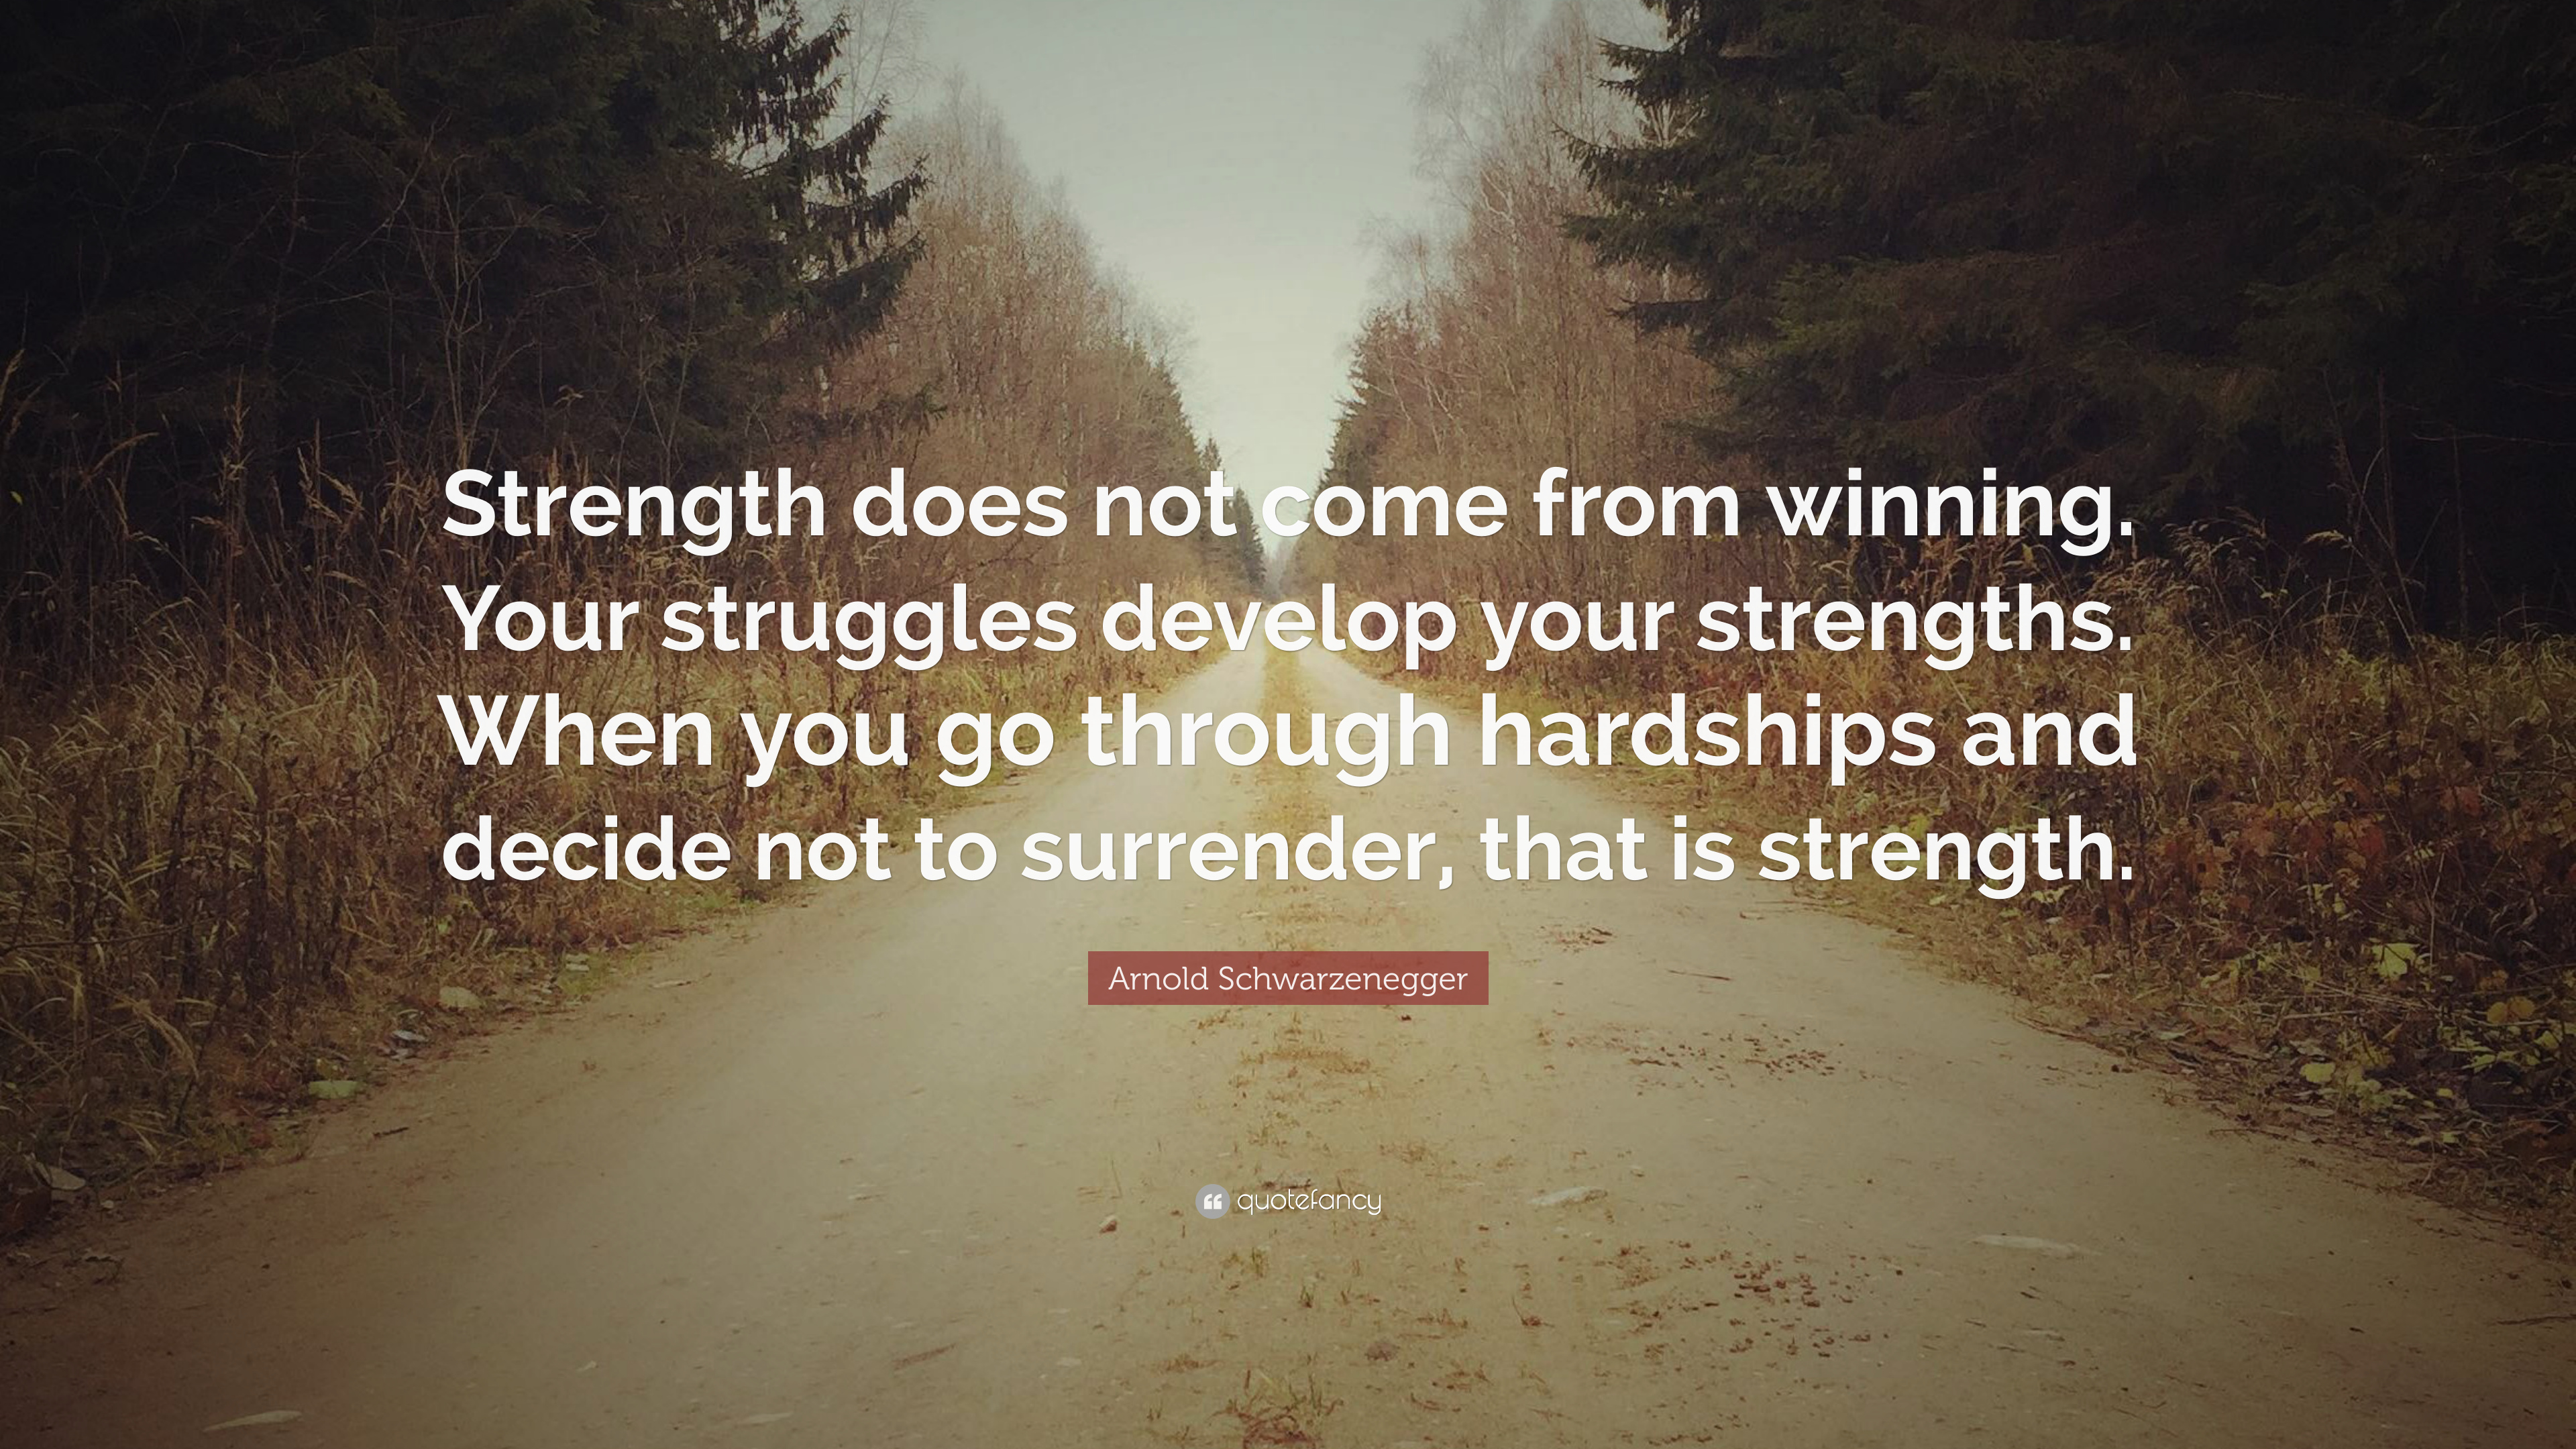 Arnold Schwarzenegger Quotes Wallpaper Arnold Schwarzenegger Quote Strength Does Not Come From